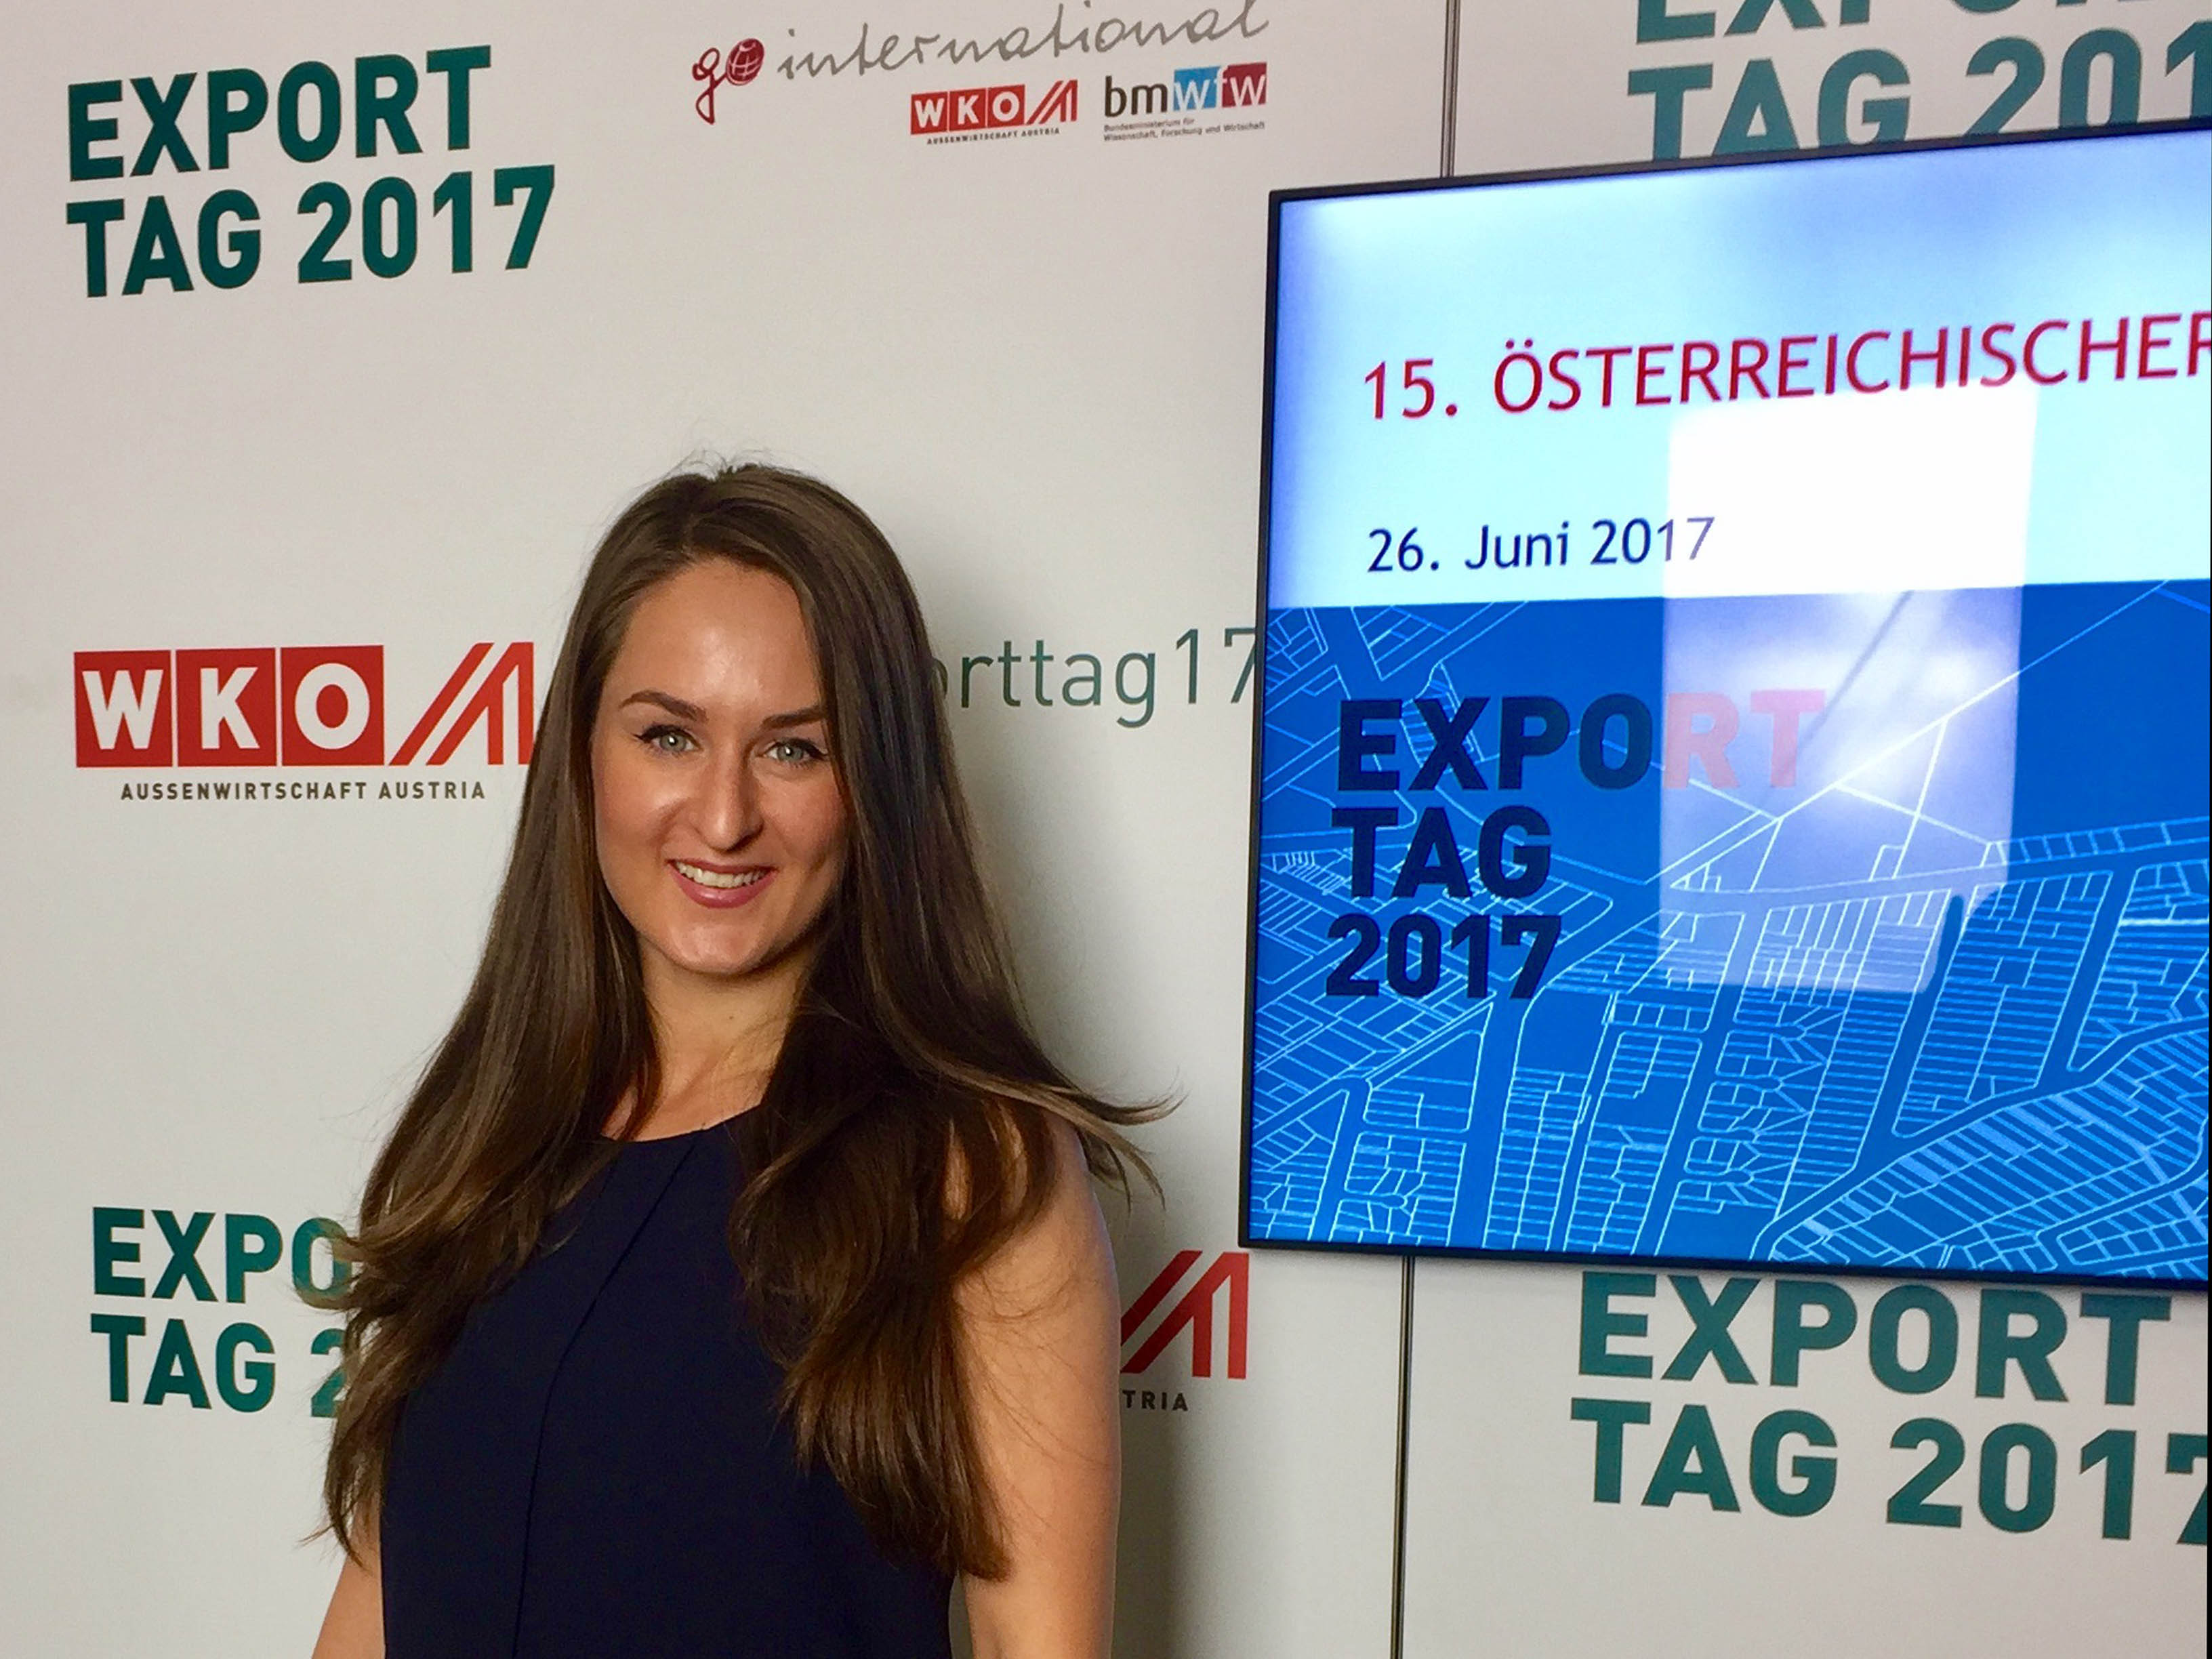 Export Day Austria 2017